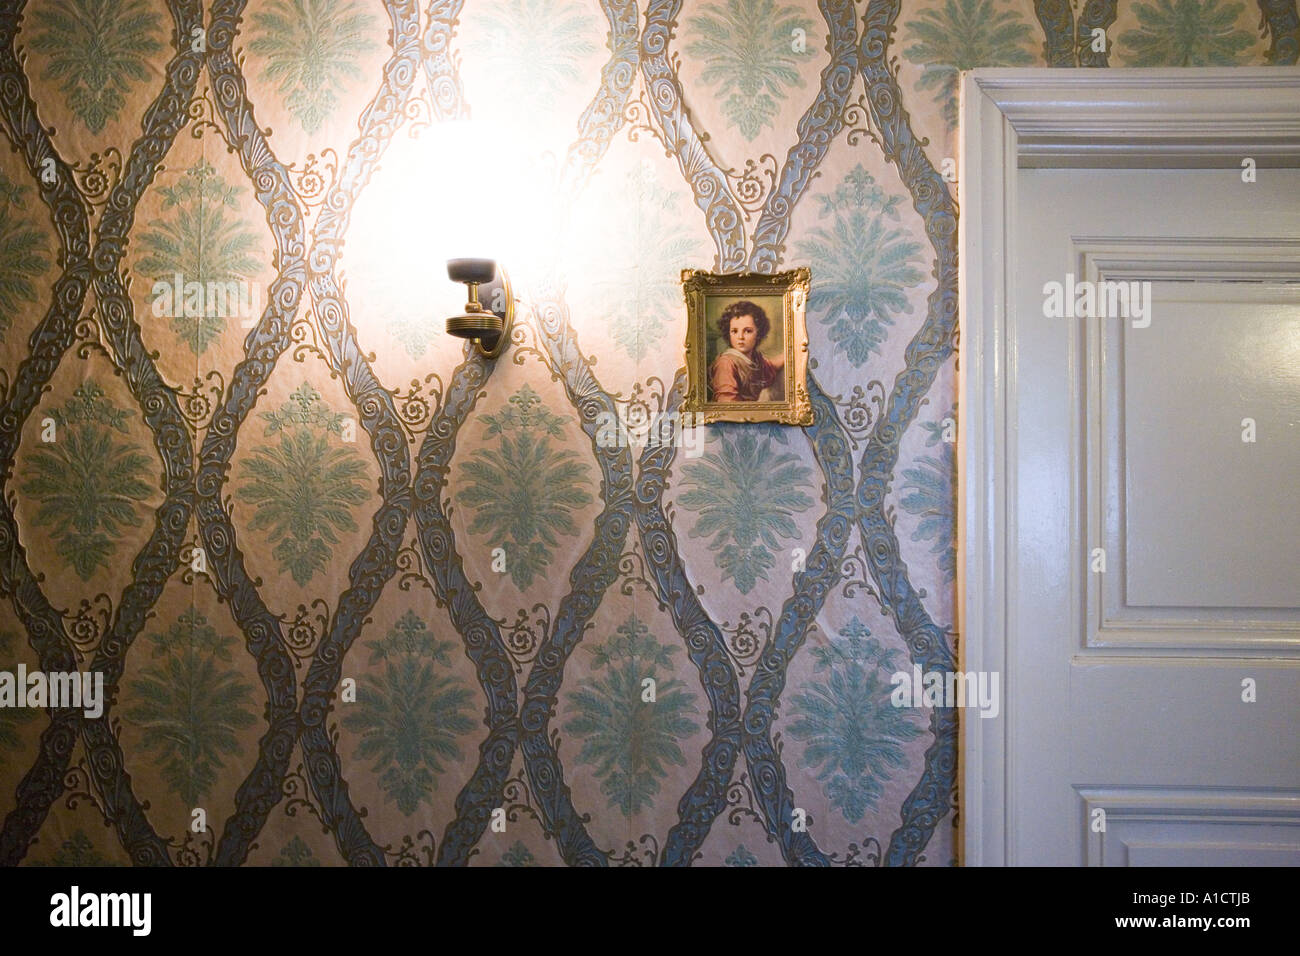 Bright lamp glowing next to a small framed baroque painting hung on a wall with floral pattern near the door - Stock Image